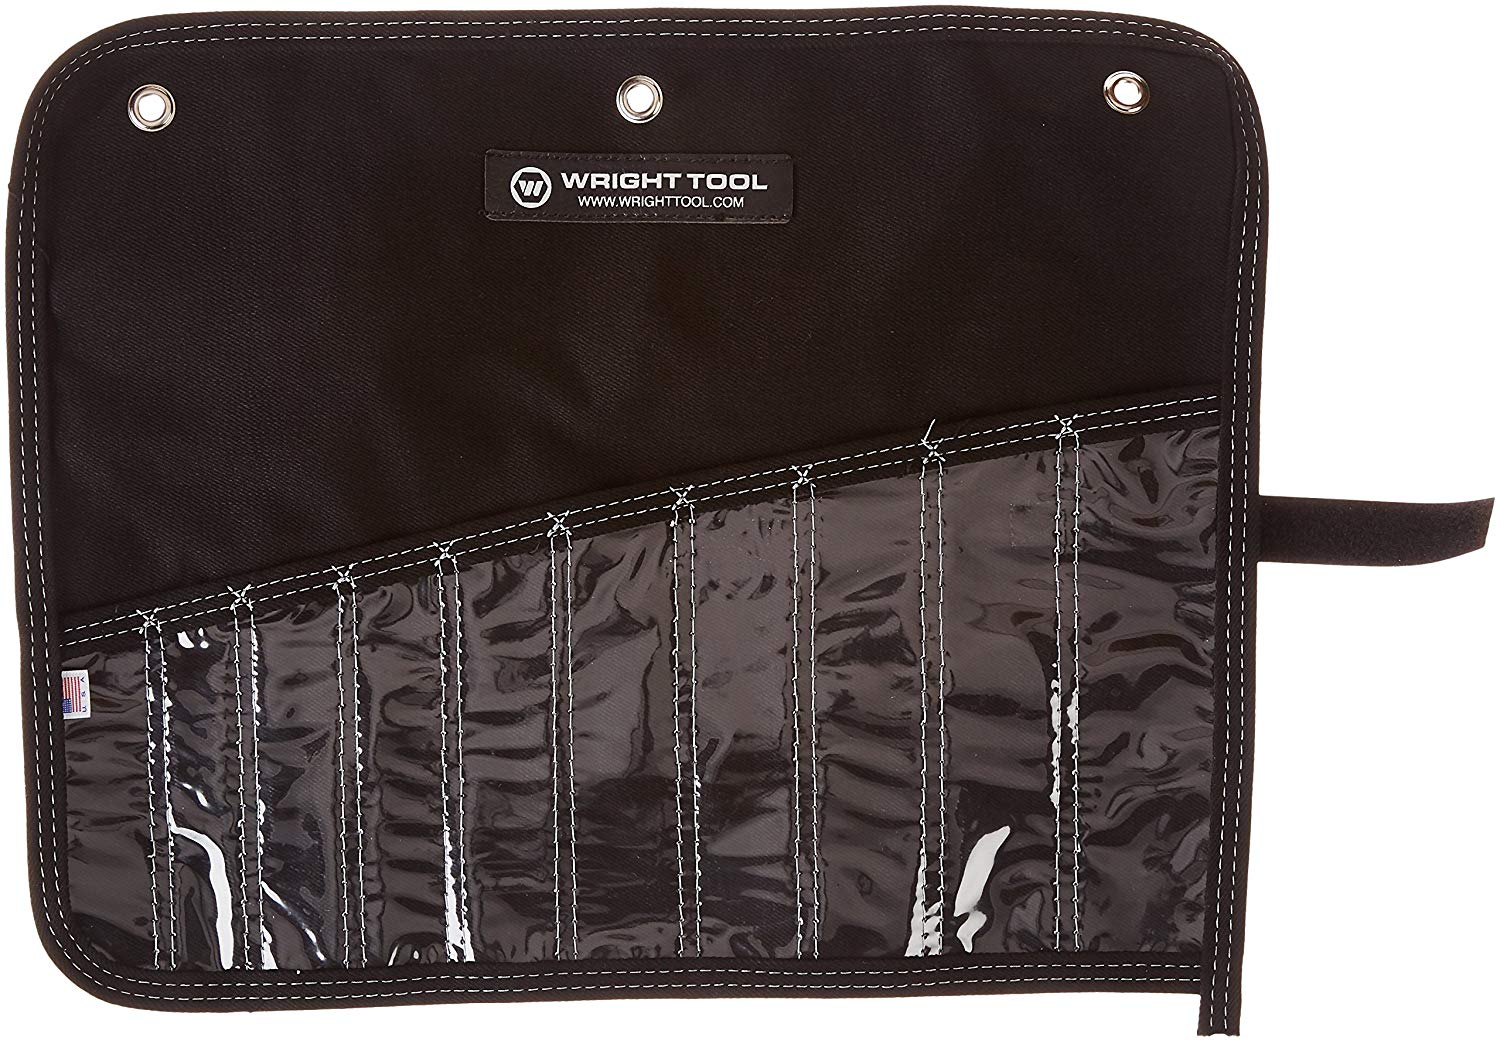 "Wright Tool 751-ROLL Denim Tool Roll - 18"" x 14-3/8"" - 10 pockets"